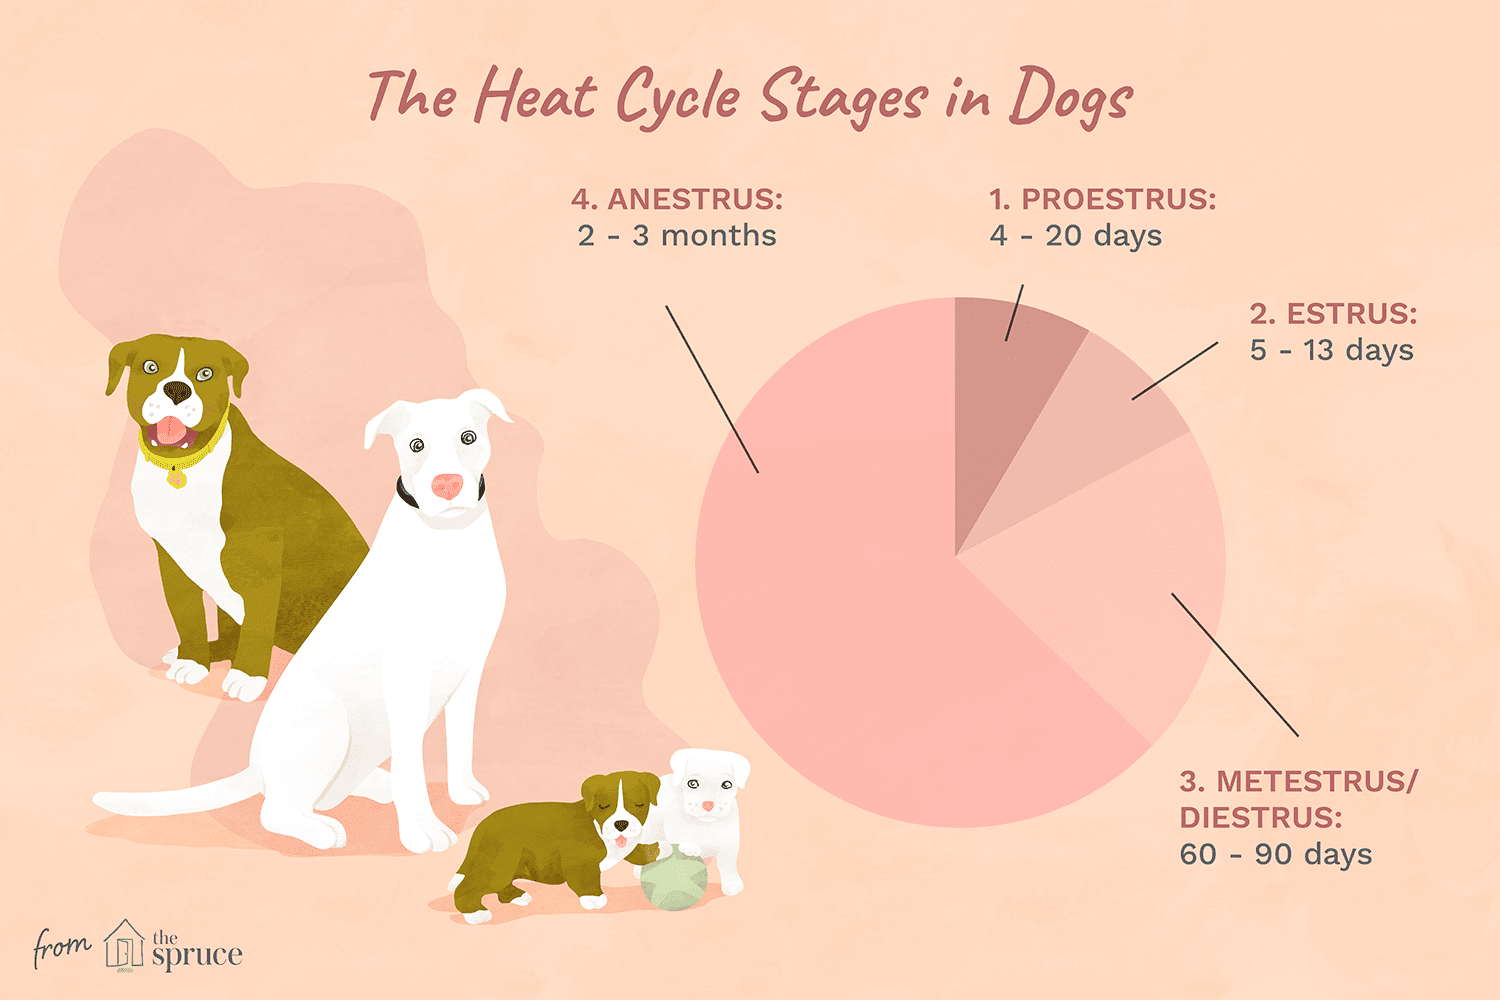 Illustration of the heat cycle stages in dogs including proestrus, estrus, metestrus, and anestrus.